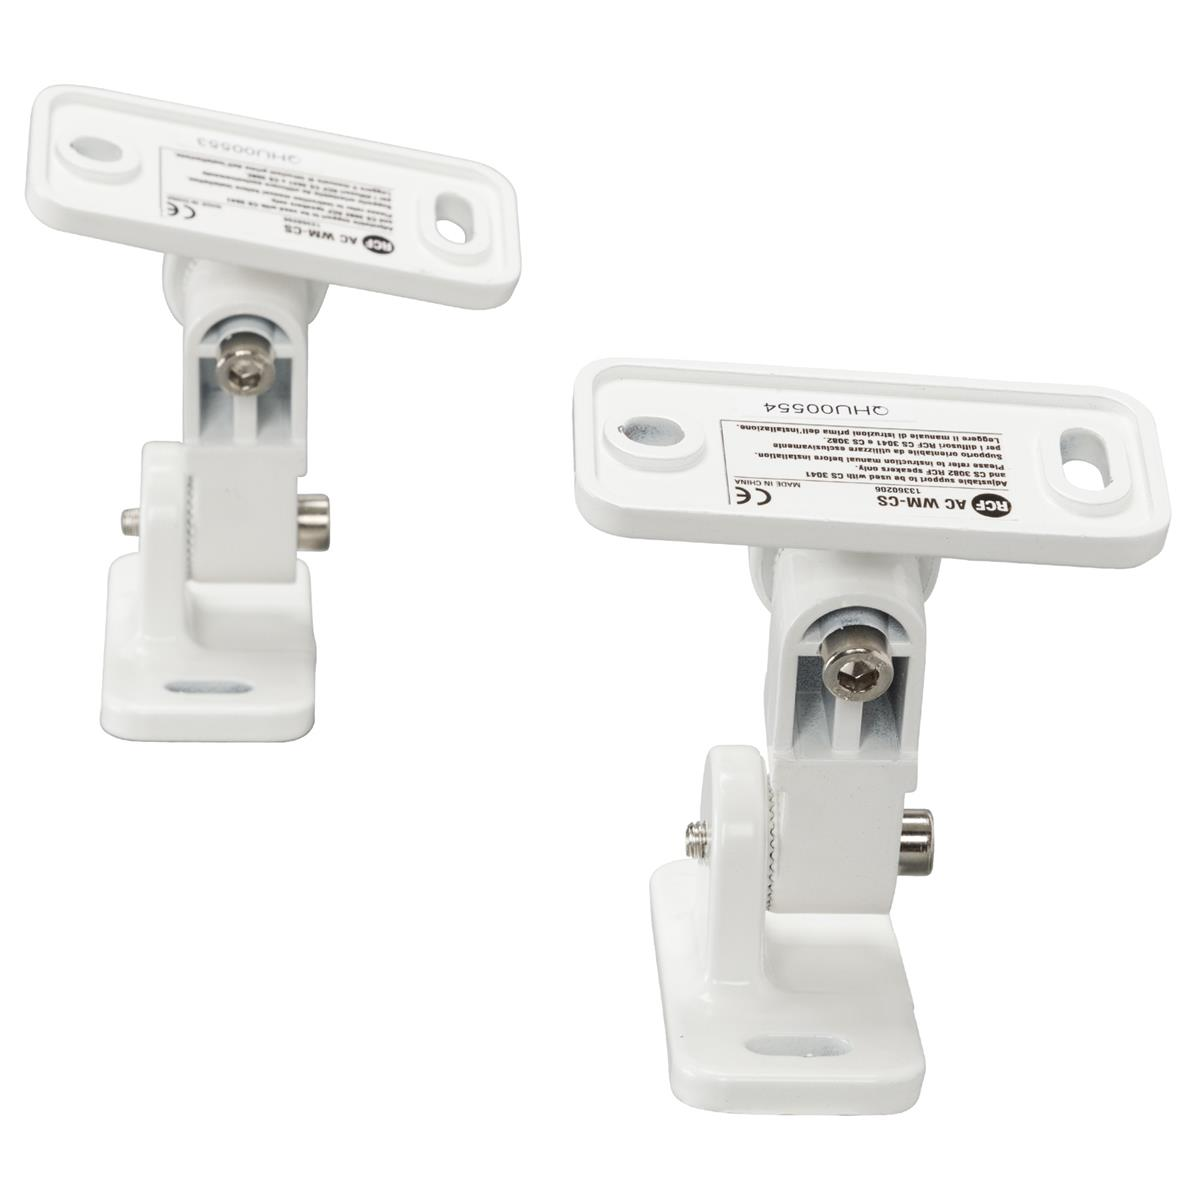 RCF AC WM CS Pair of swivel mounting bracket for CS3041 and